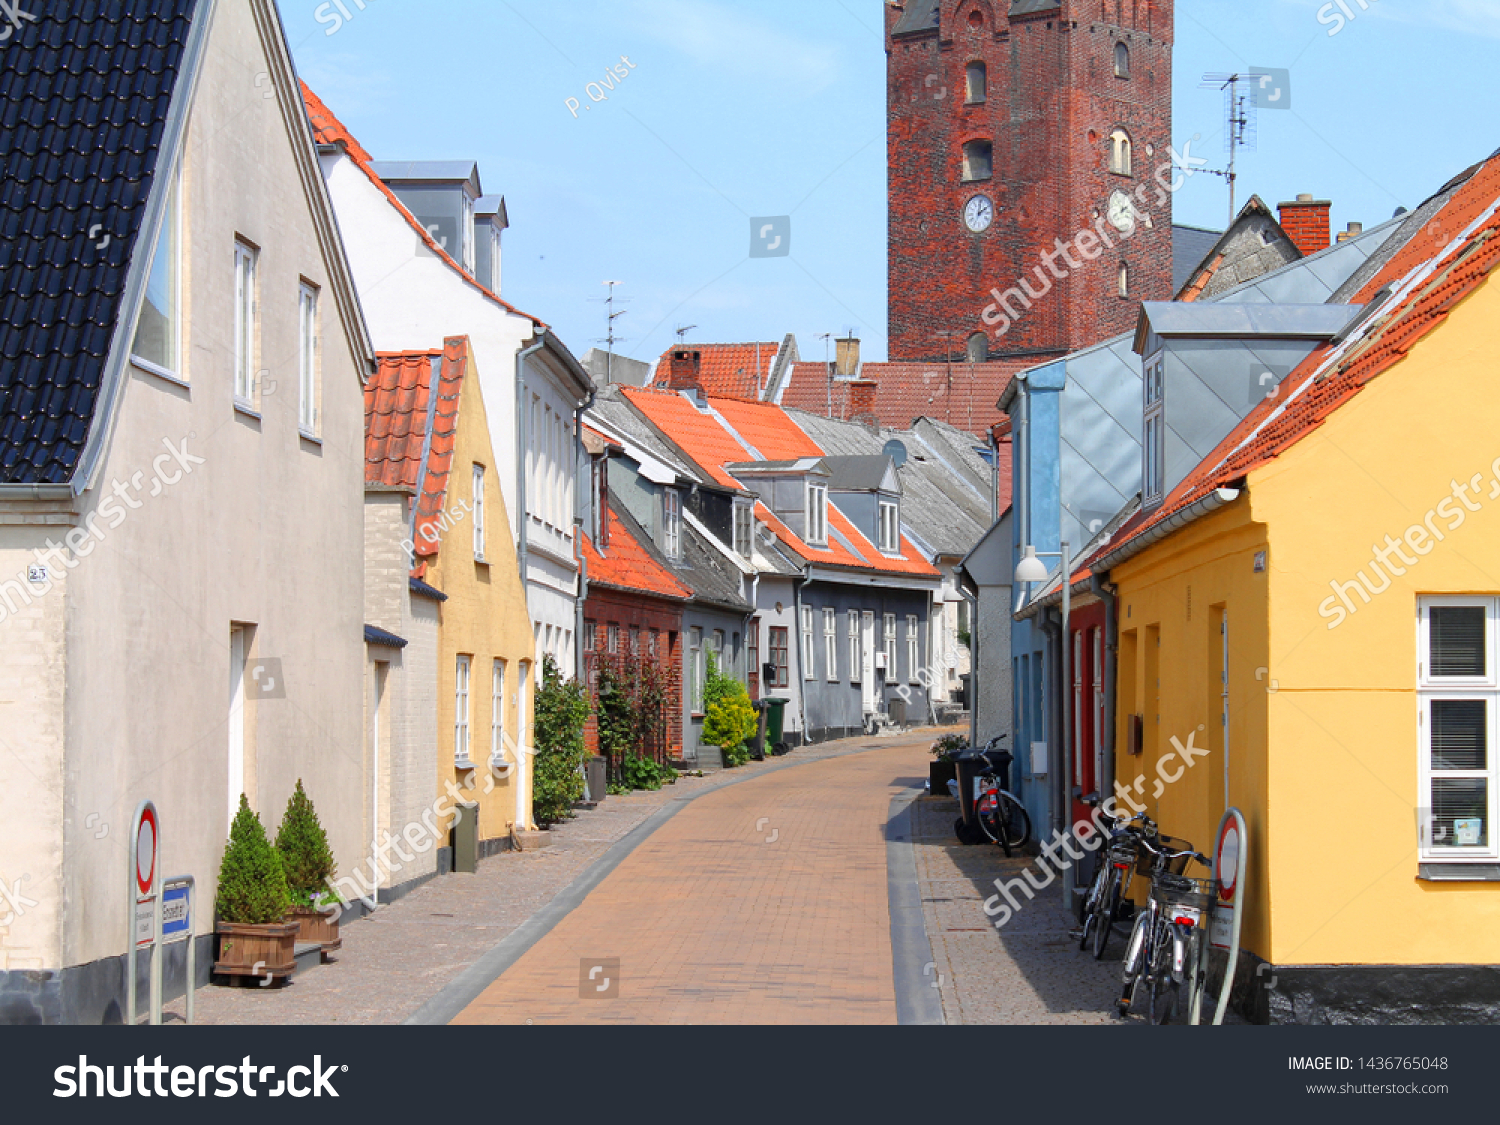 Narrow Streets Small Houses Old Danish Stock Photo Edit Now